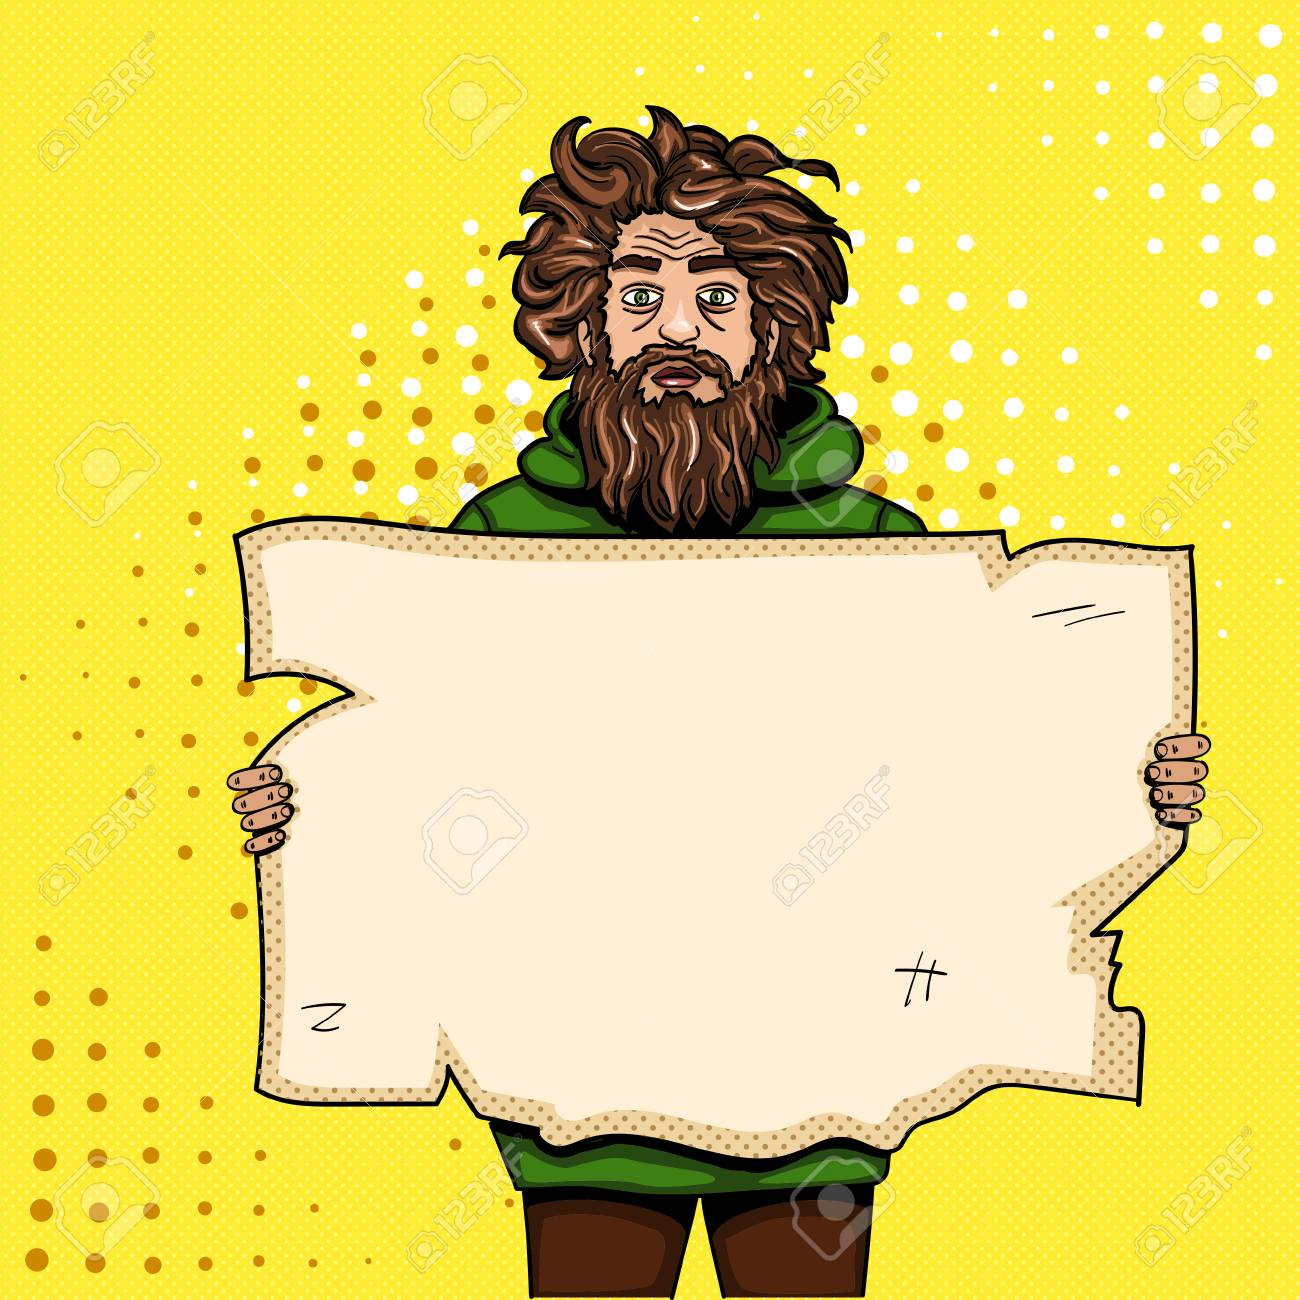 Homeless man with paper sign pop art style vector illustration. Comic book style imitation. Vintage retro style. Conceptual illustration - 93702295